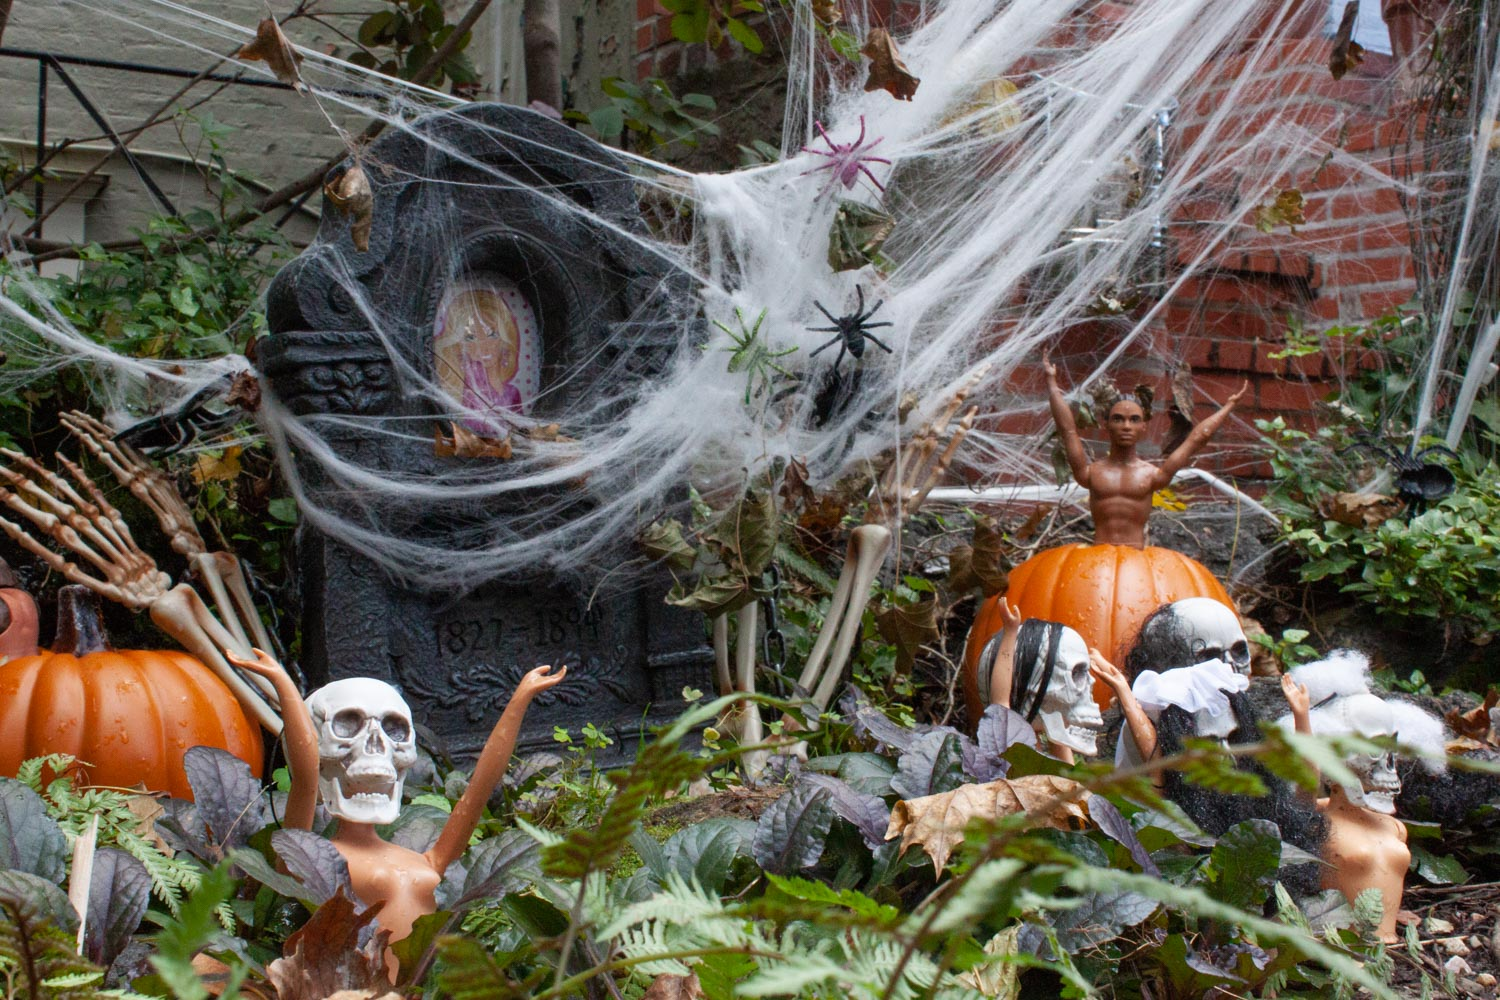 The Barbie pond Halloween display